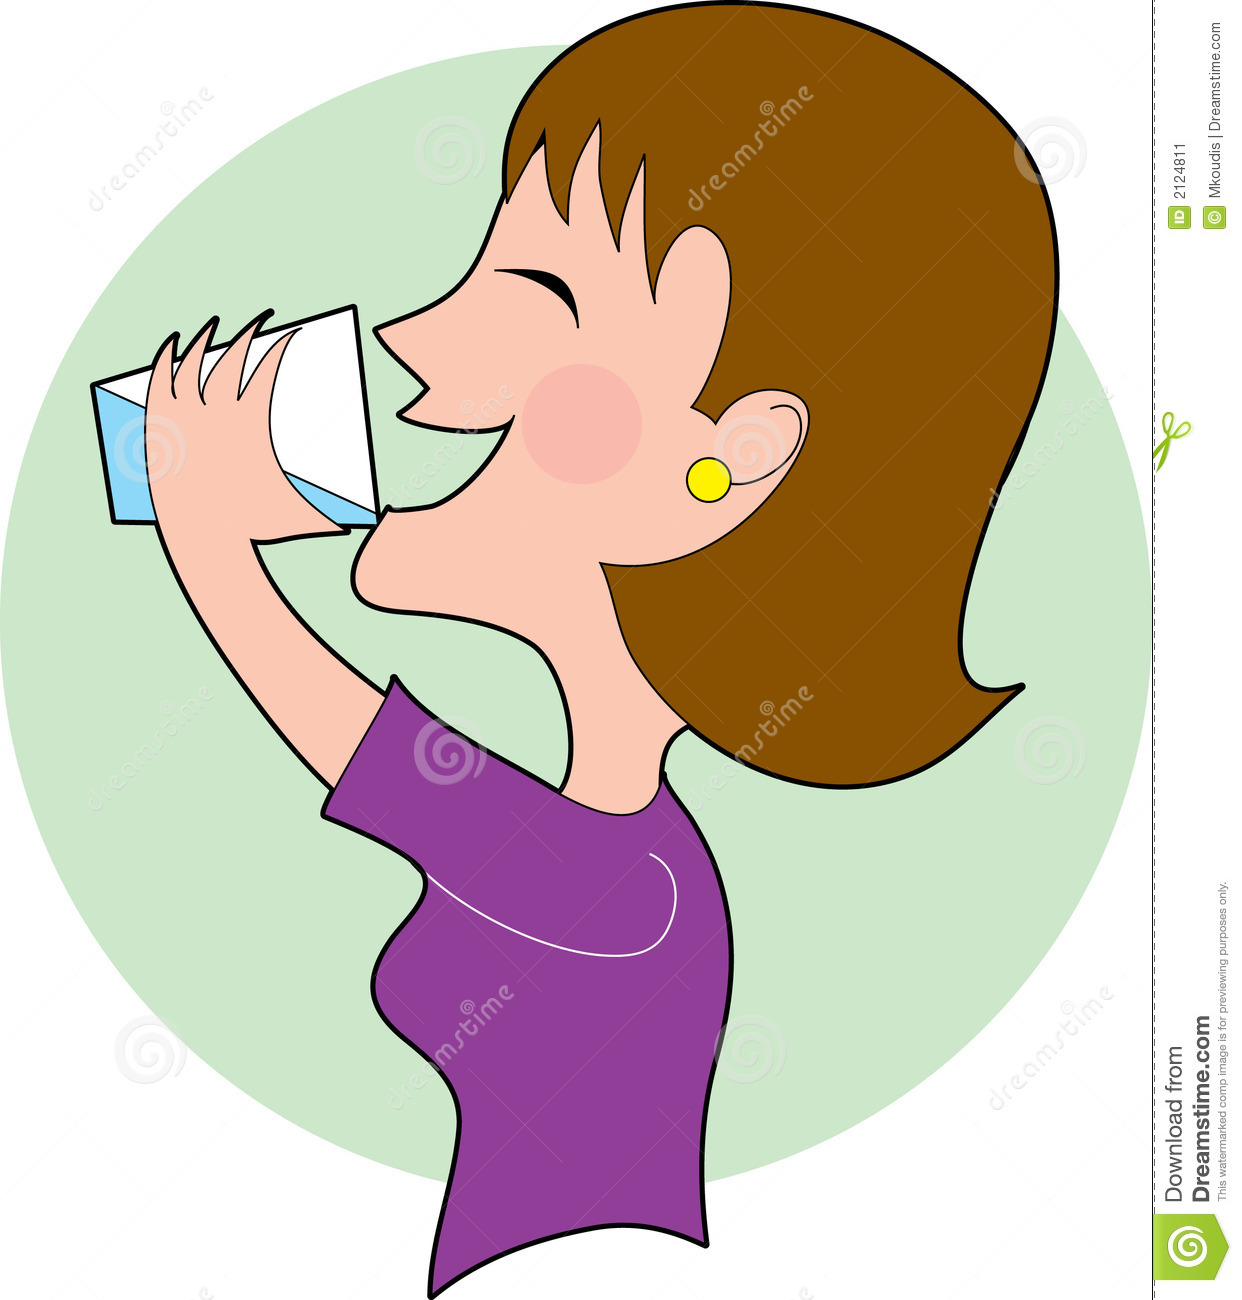 Drinking clipart. Water free